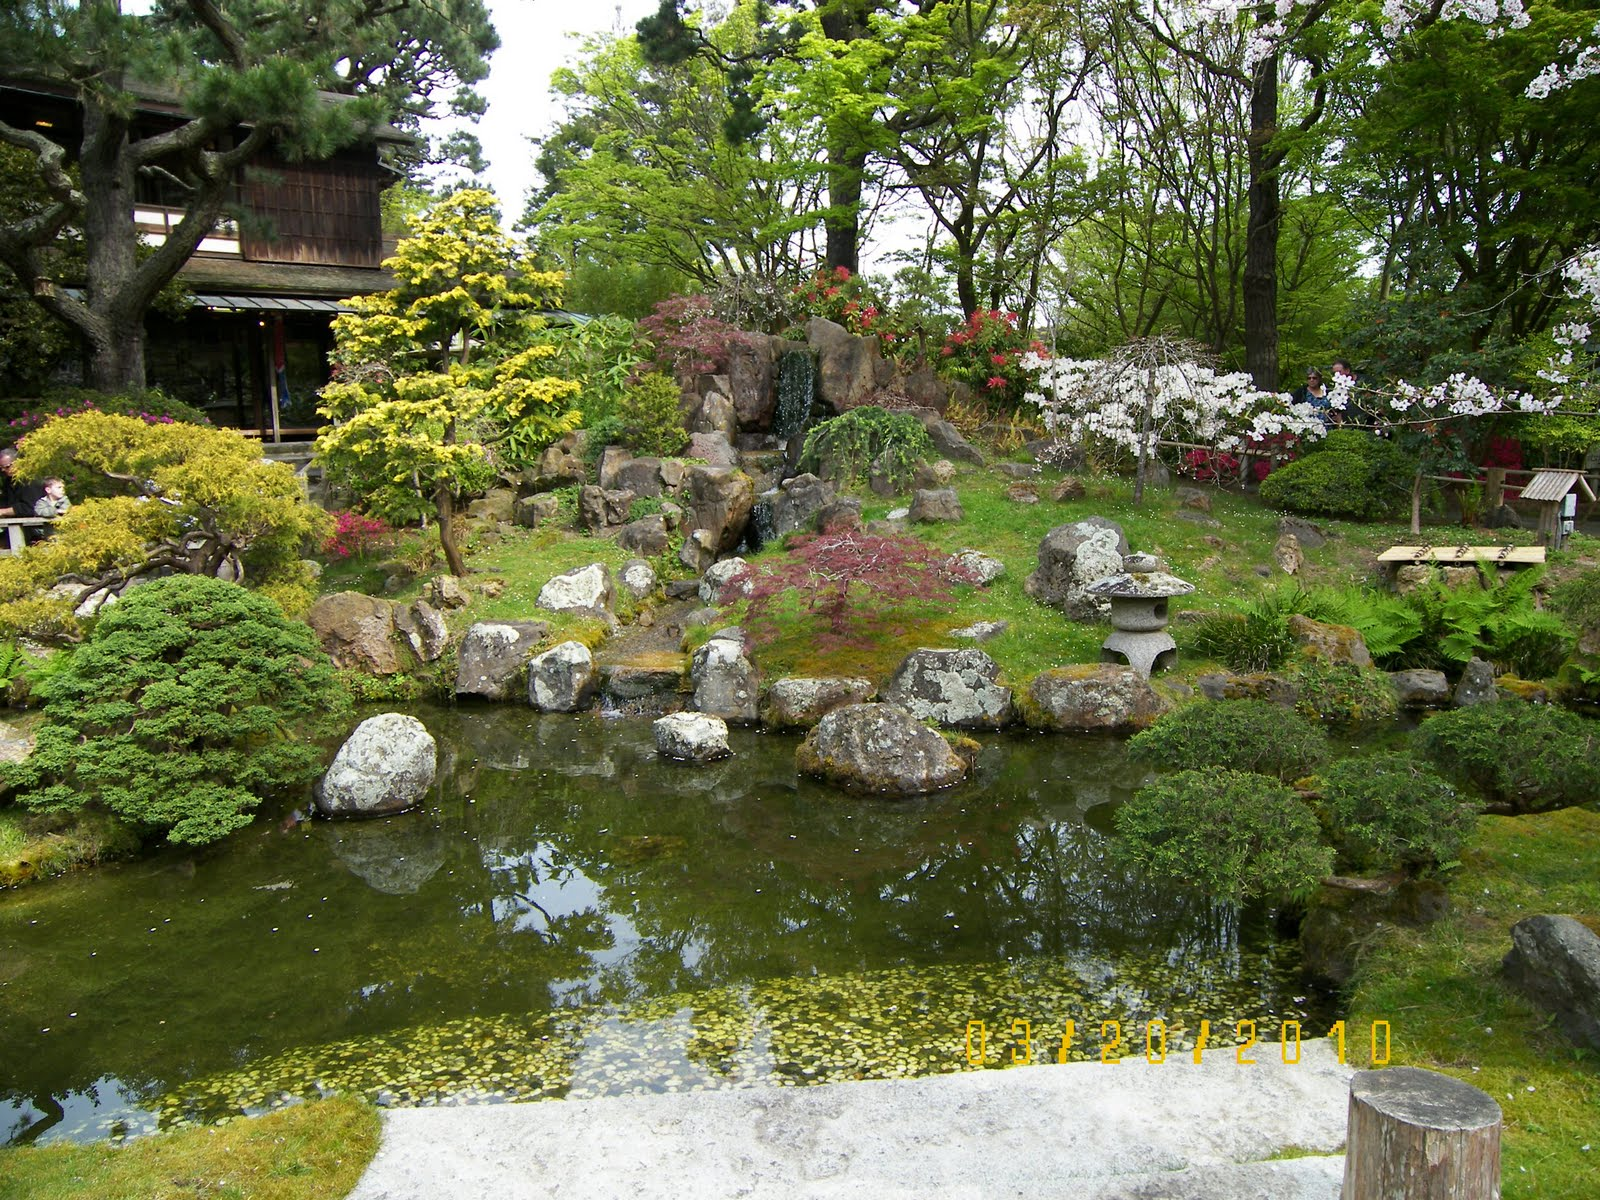 My koi pond 2010 visited sf japanese garden for Koi ponds and gardens